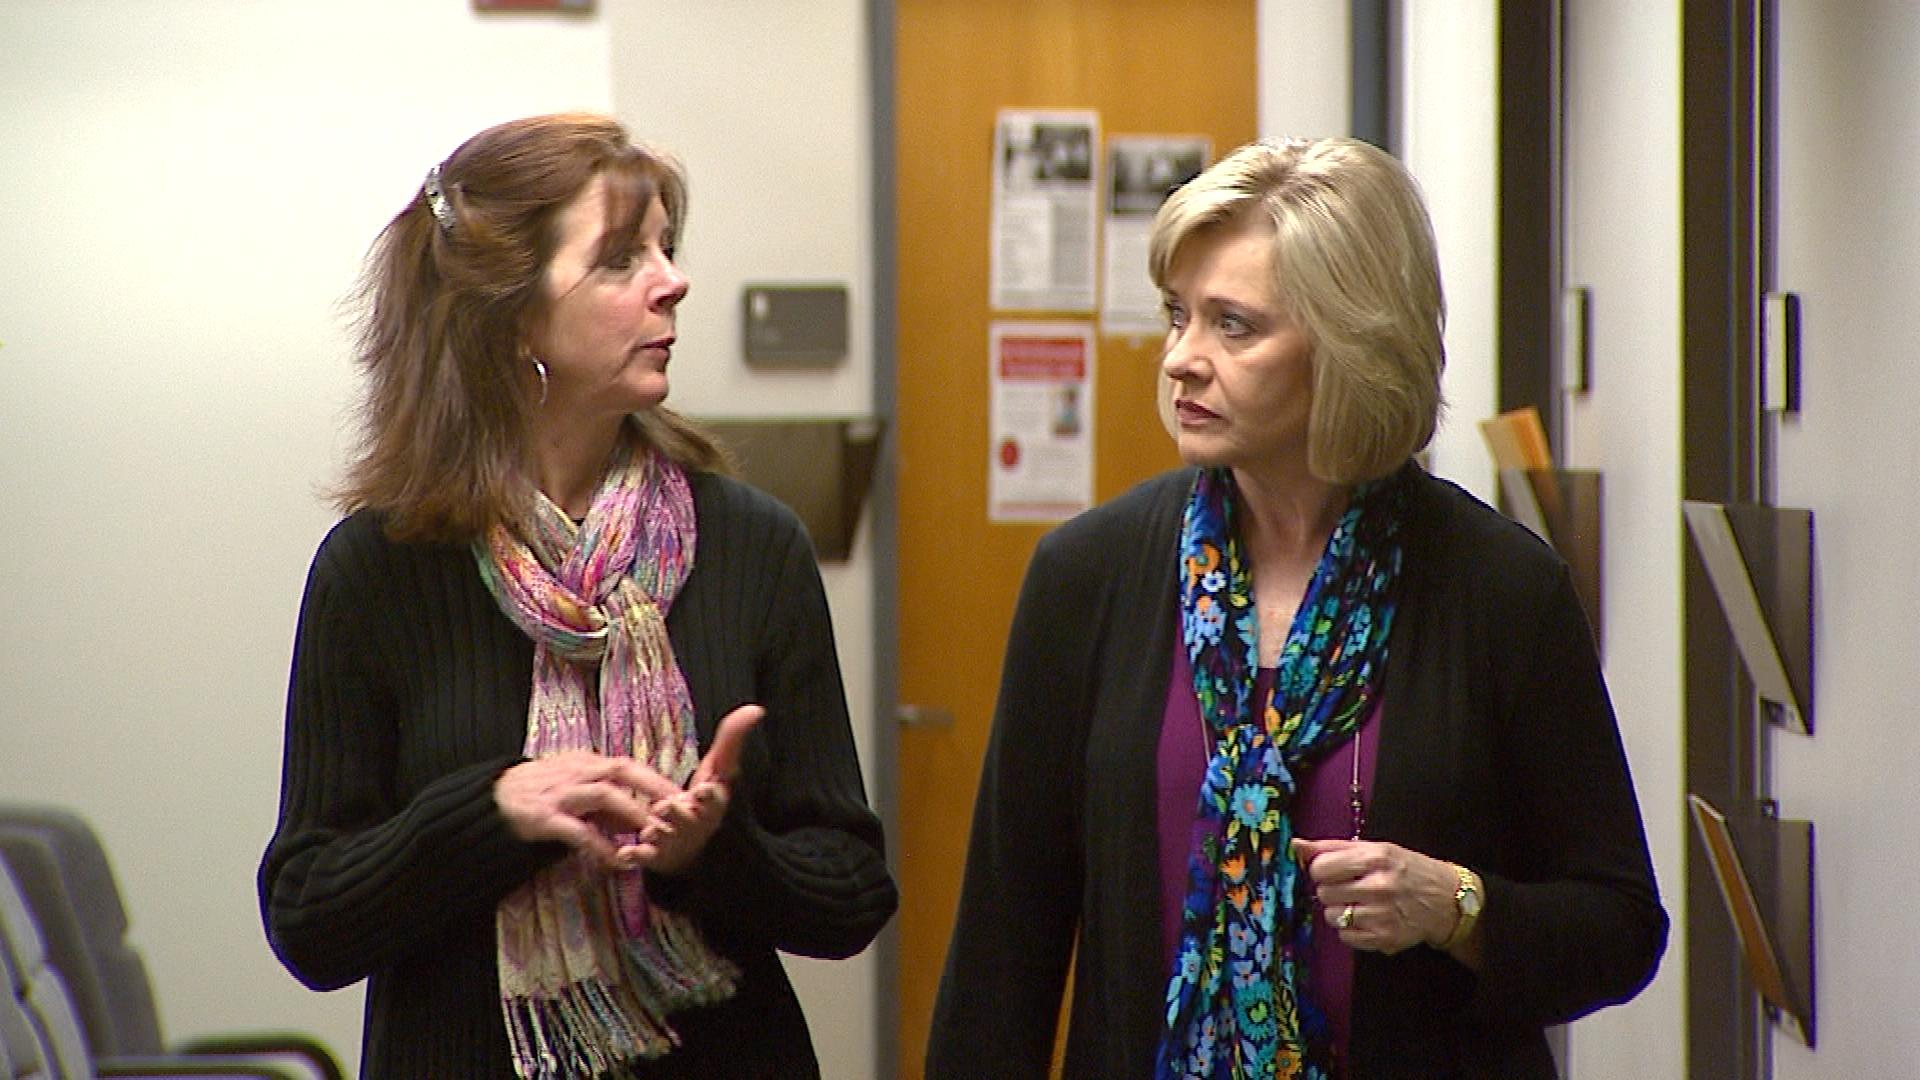 Randi Smith, LCSW, PhD. and associate professor of psychology at MSU Denver is interviewed by CBS4's Kathy Walsh)